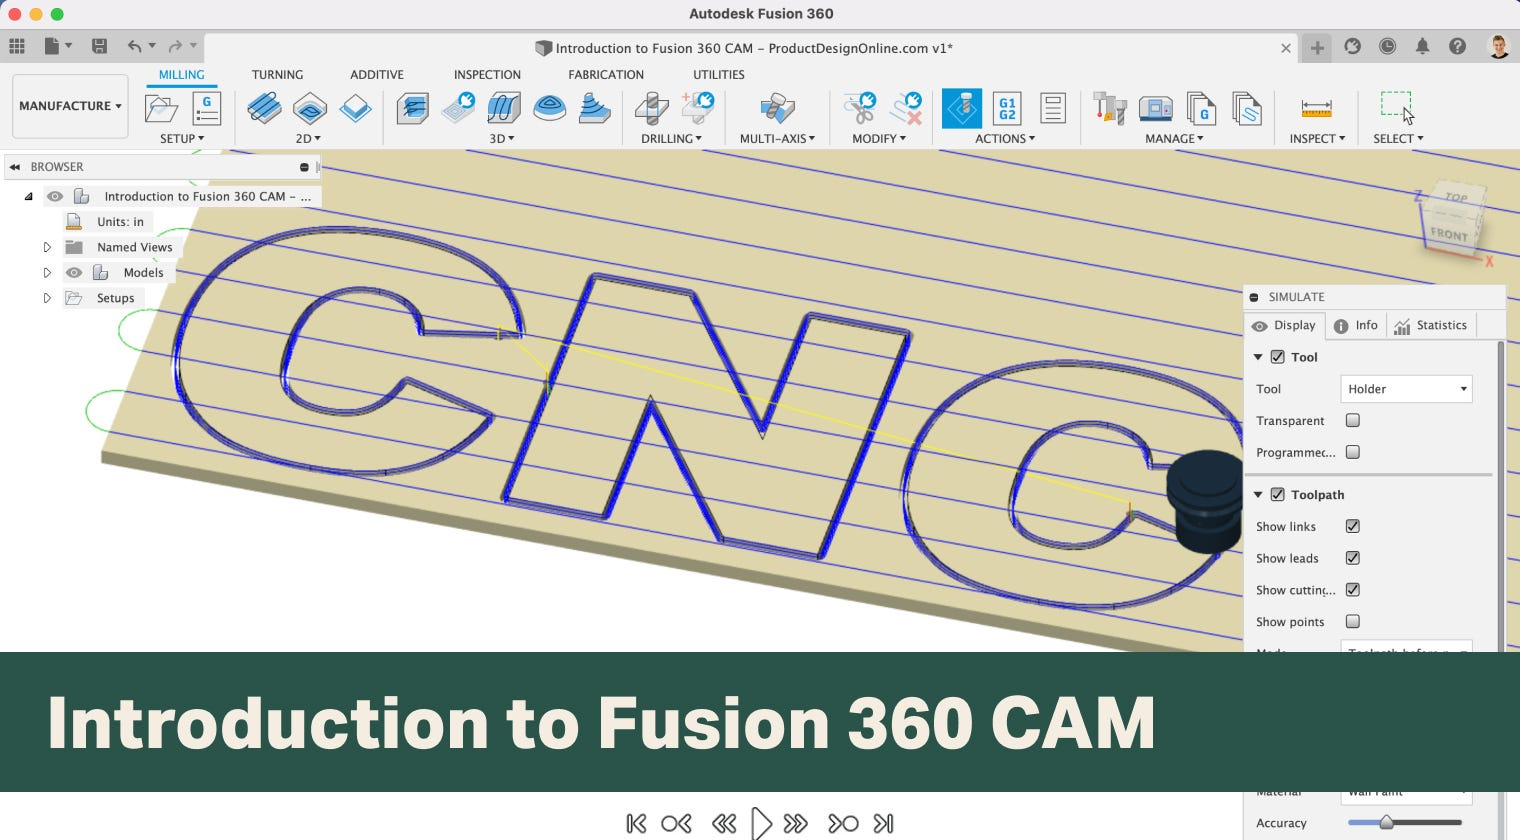 Introduction to Fusion 360 CAM for Woodworkers course by Product Design Online